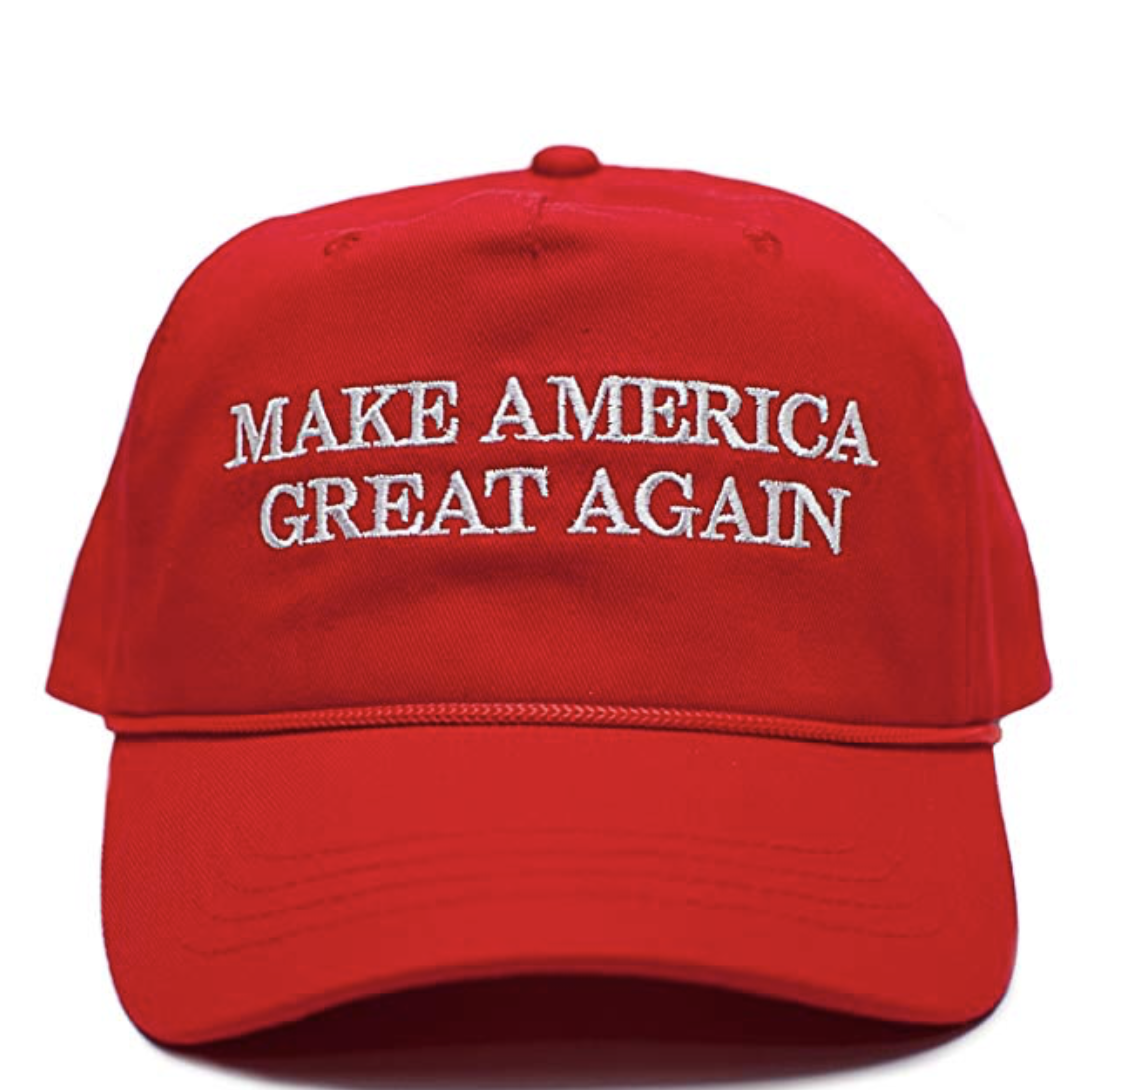 "Red baseball cap with white text reading ""Make America Great Again"", also referred to as MAGA."